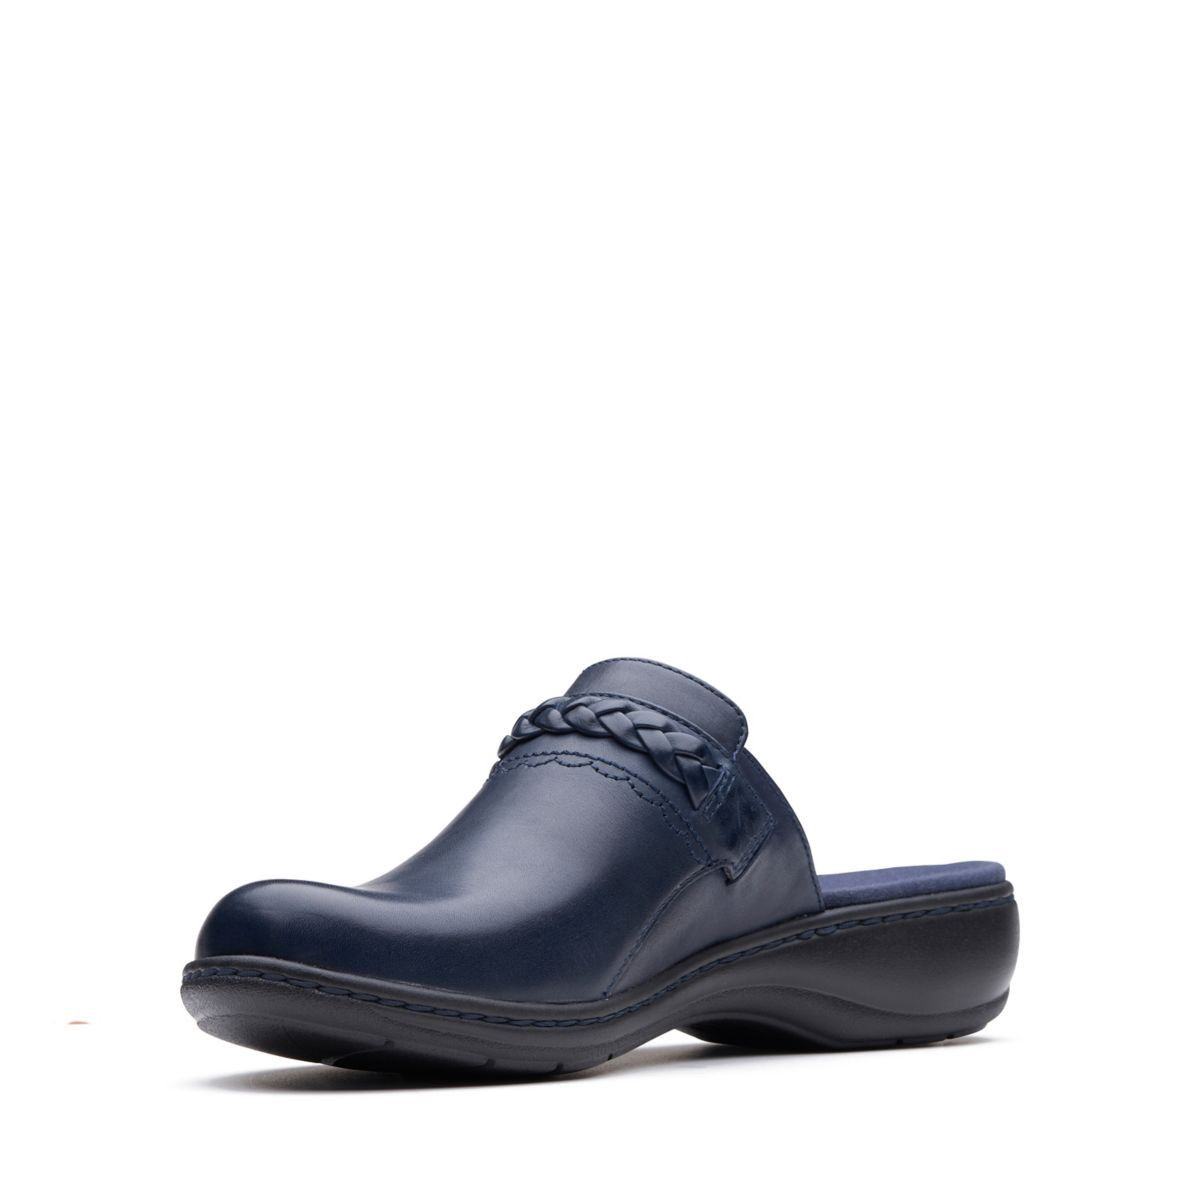 445a1331700a Clarks Leisa Carly - Womens Shoes Navy Leather 8.5 E (Wide) Out Of Stock